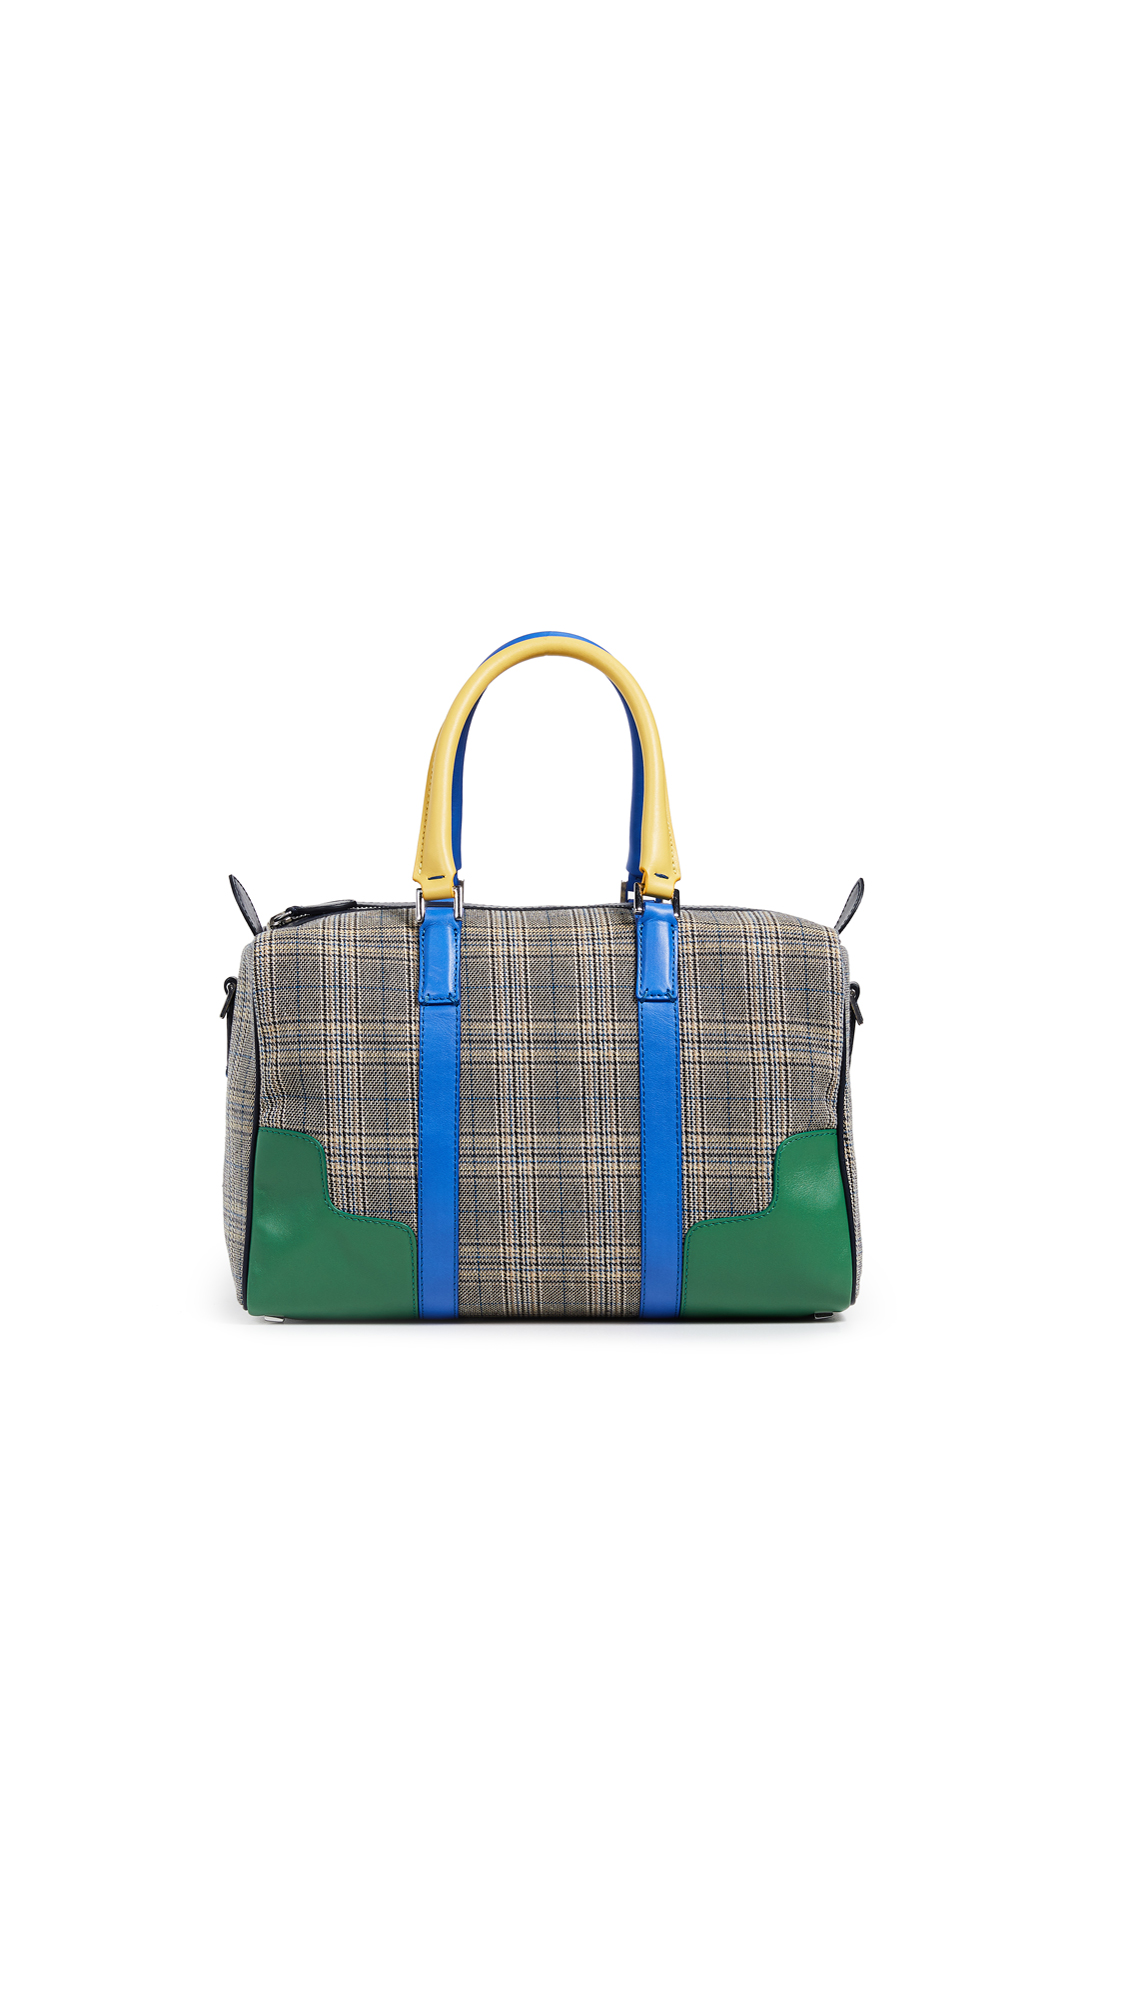 Tibi Mercredi Bag - Plaid